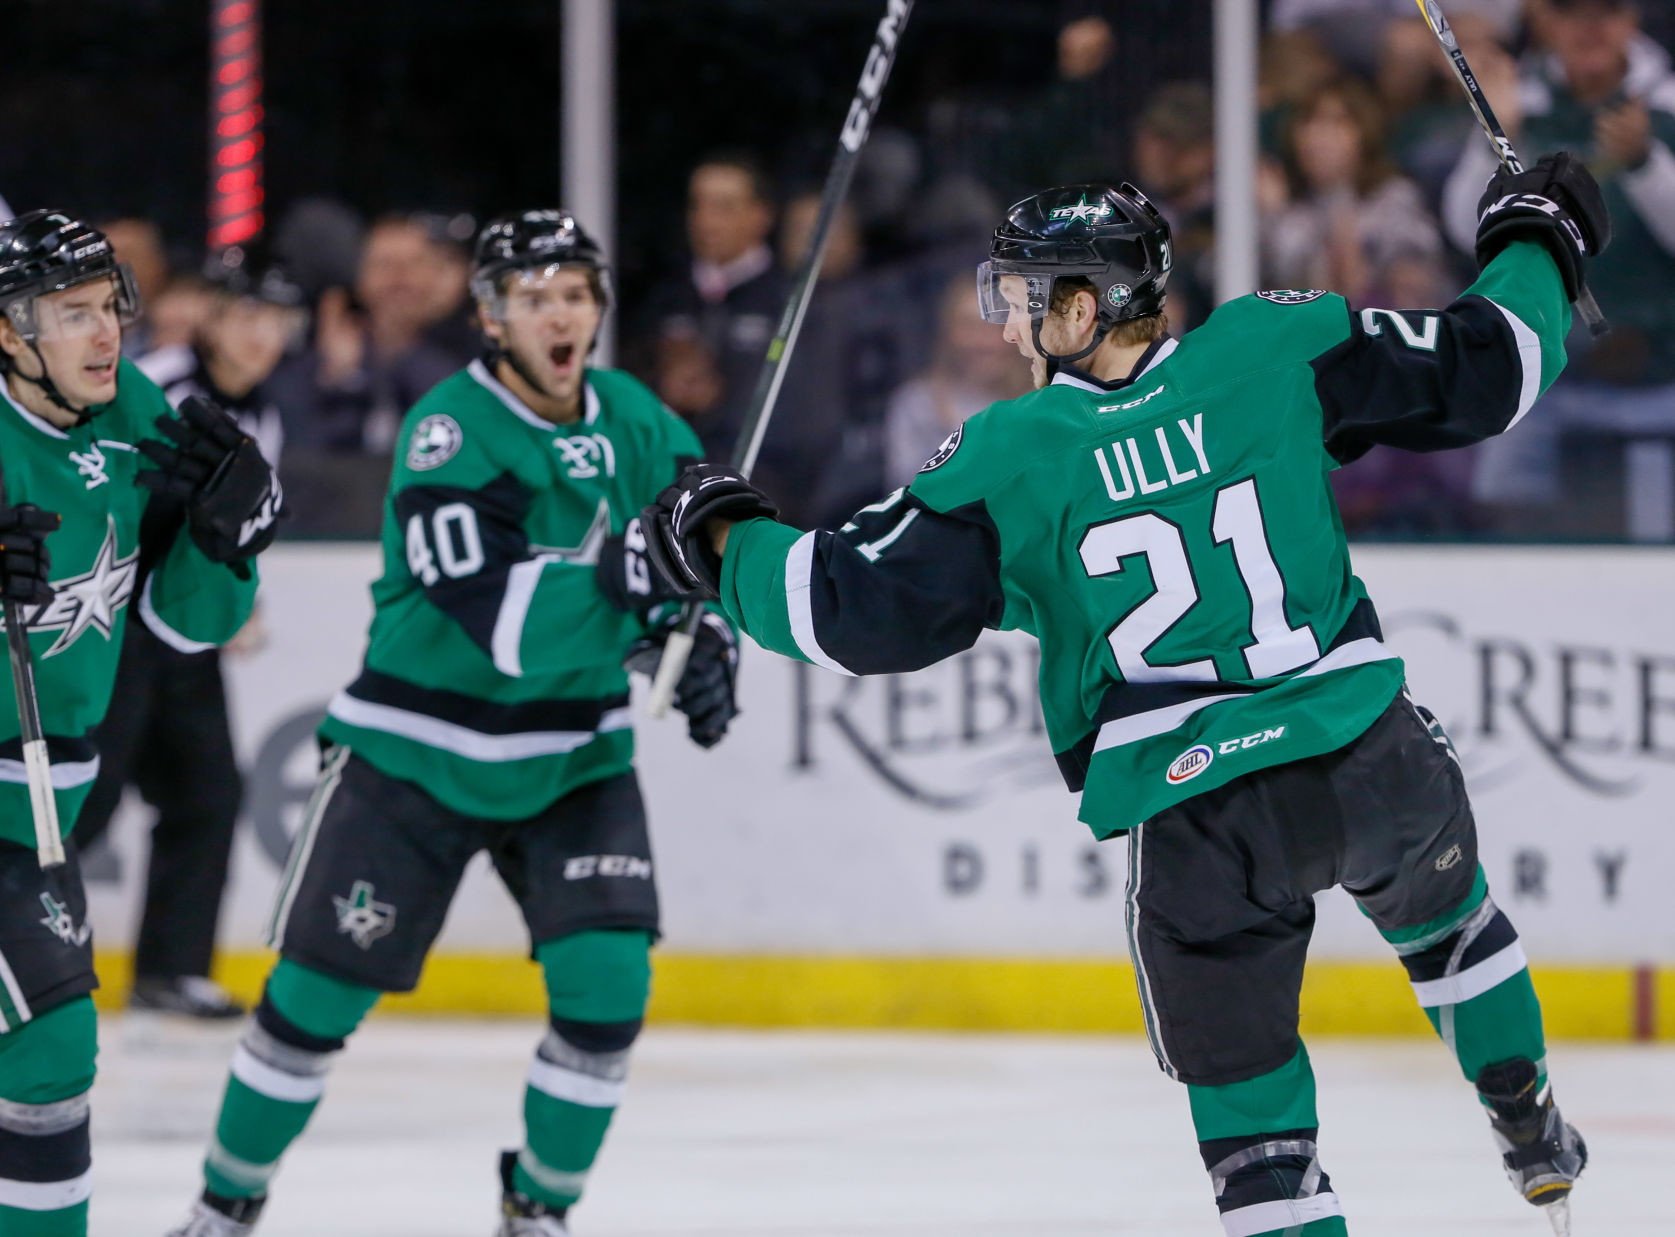 Cole Ully scored a goal and had an assist and the Texas Stars beat the Bakersfield Condors 4-3 Tuesday night at the H-E-B Center.